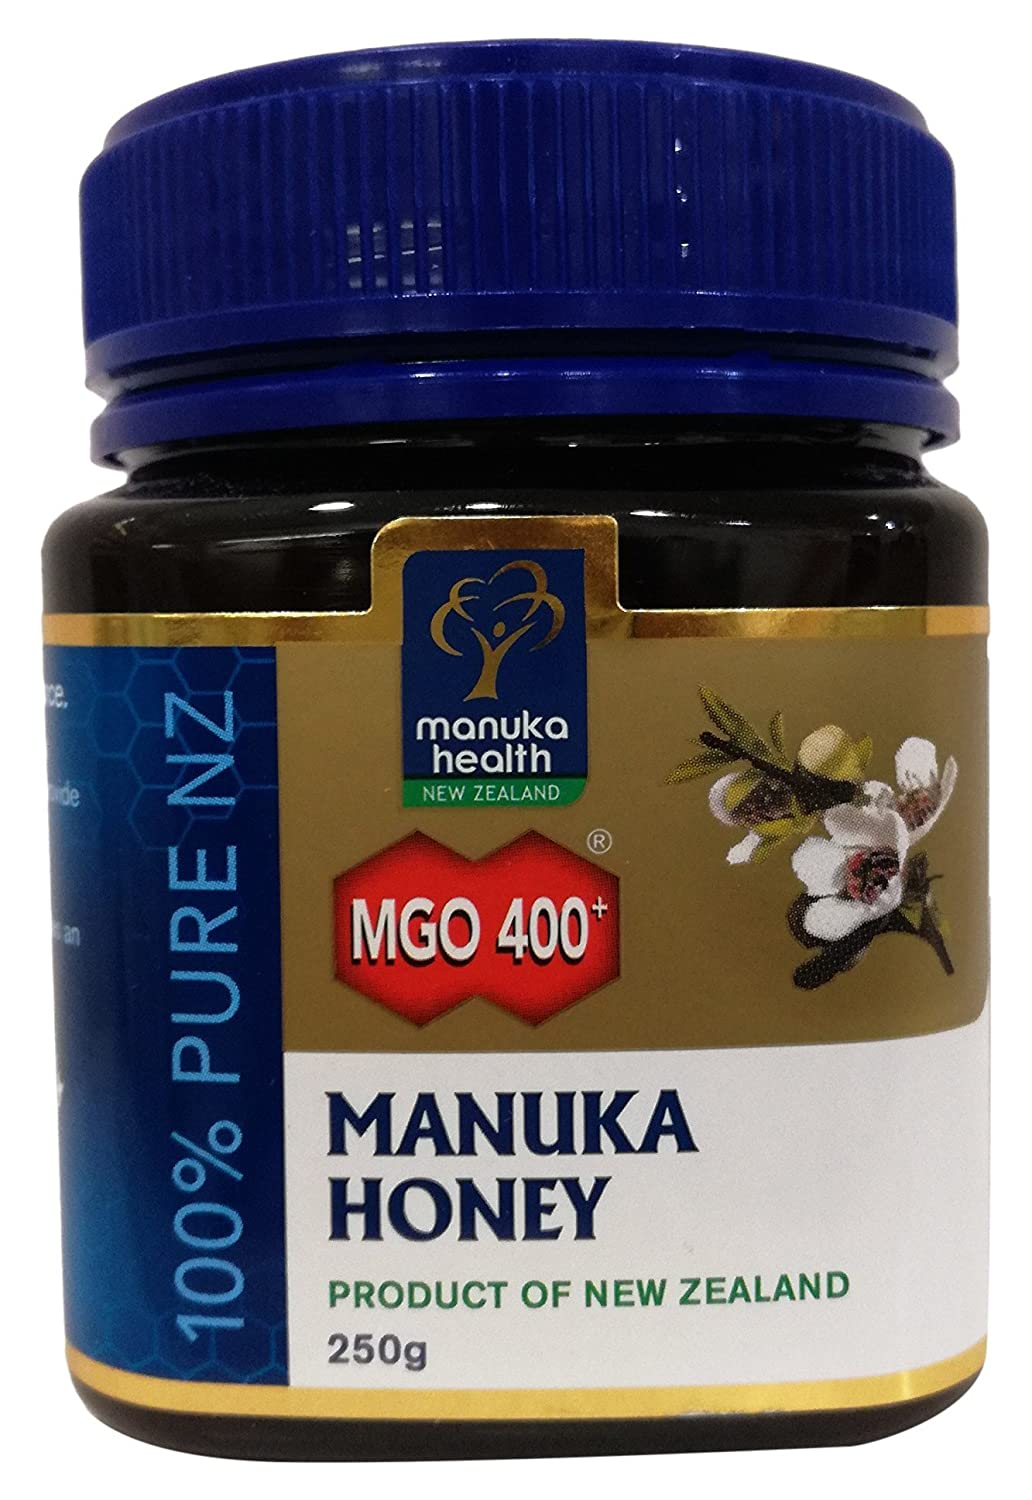 Manuka Health - MGO 400+ Manuka Honey, 100% Pure New Zealand Honey, 8.8 Ounce